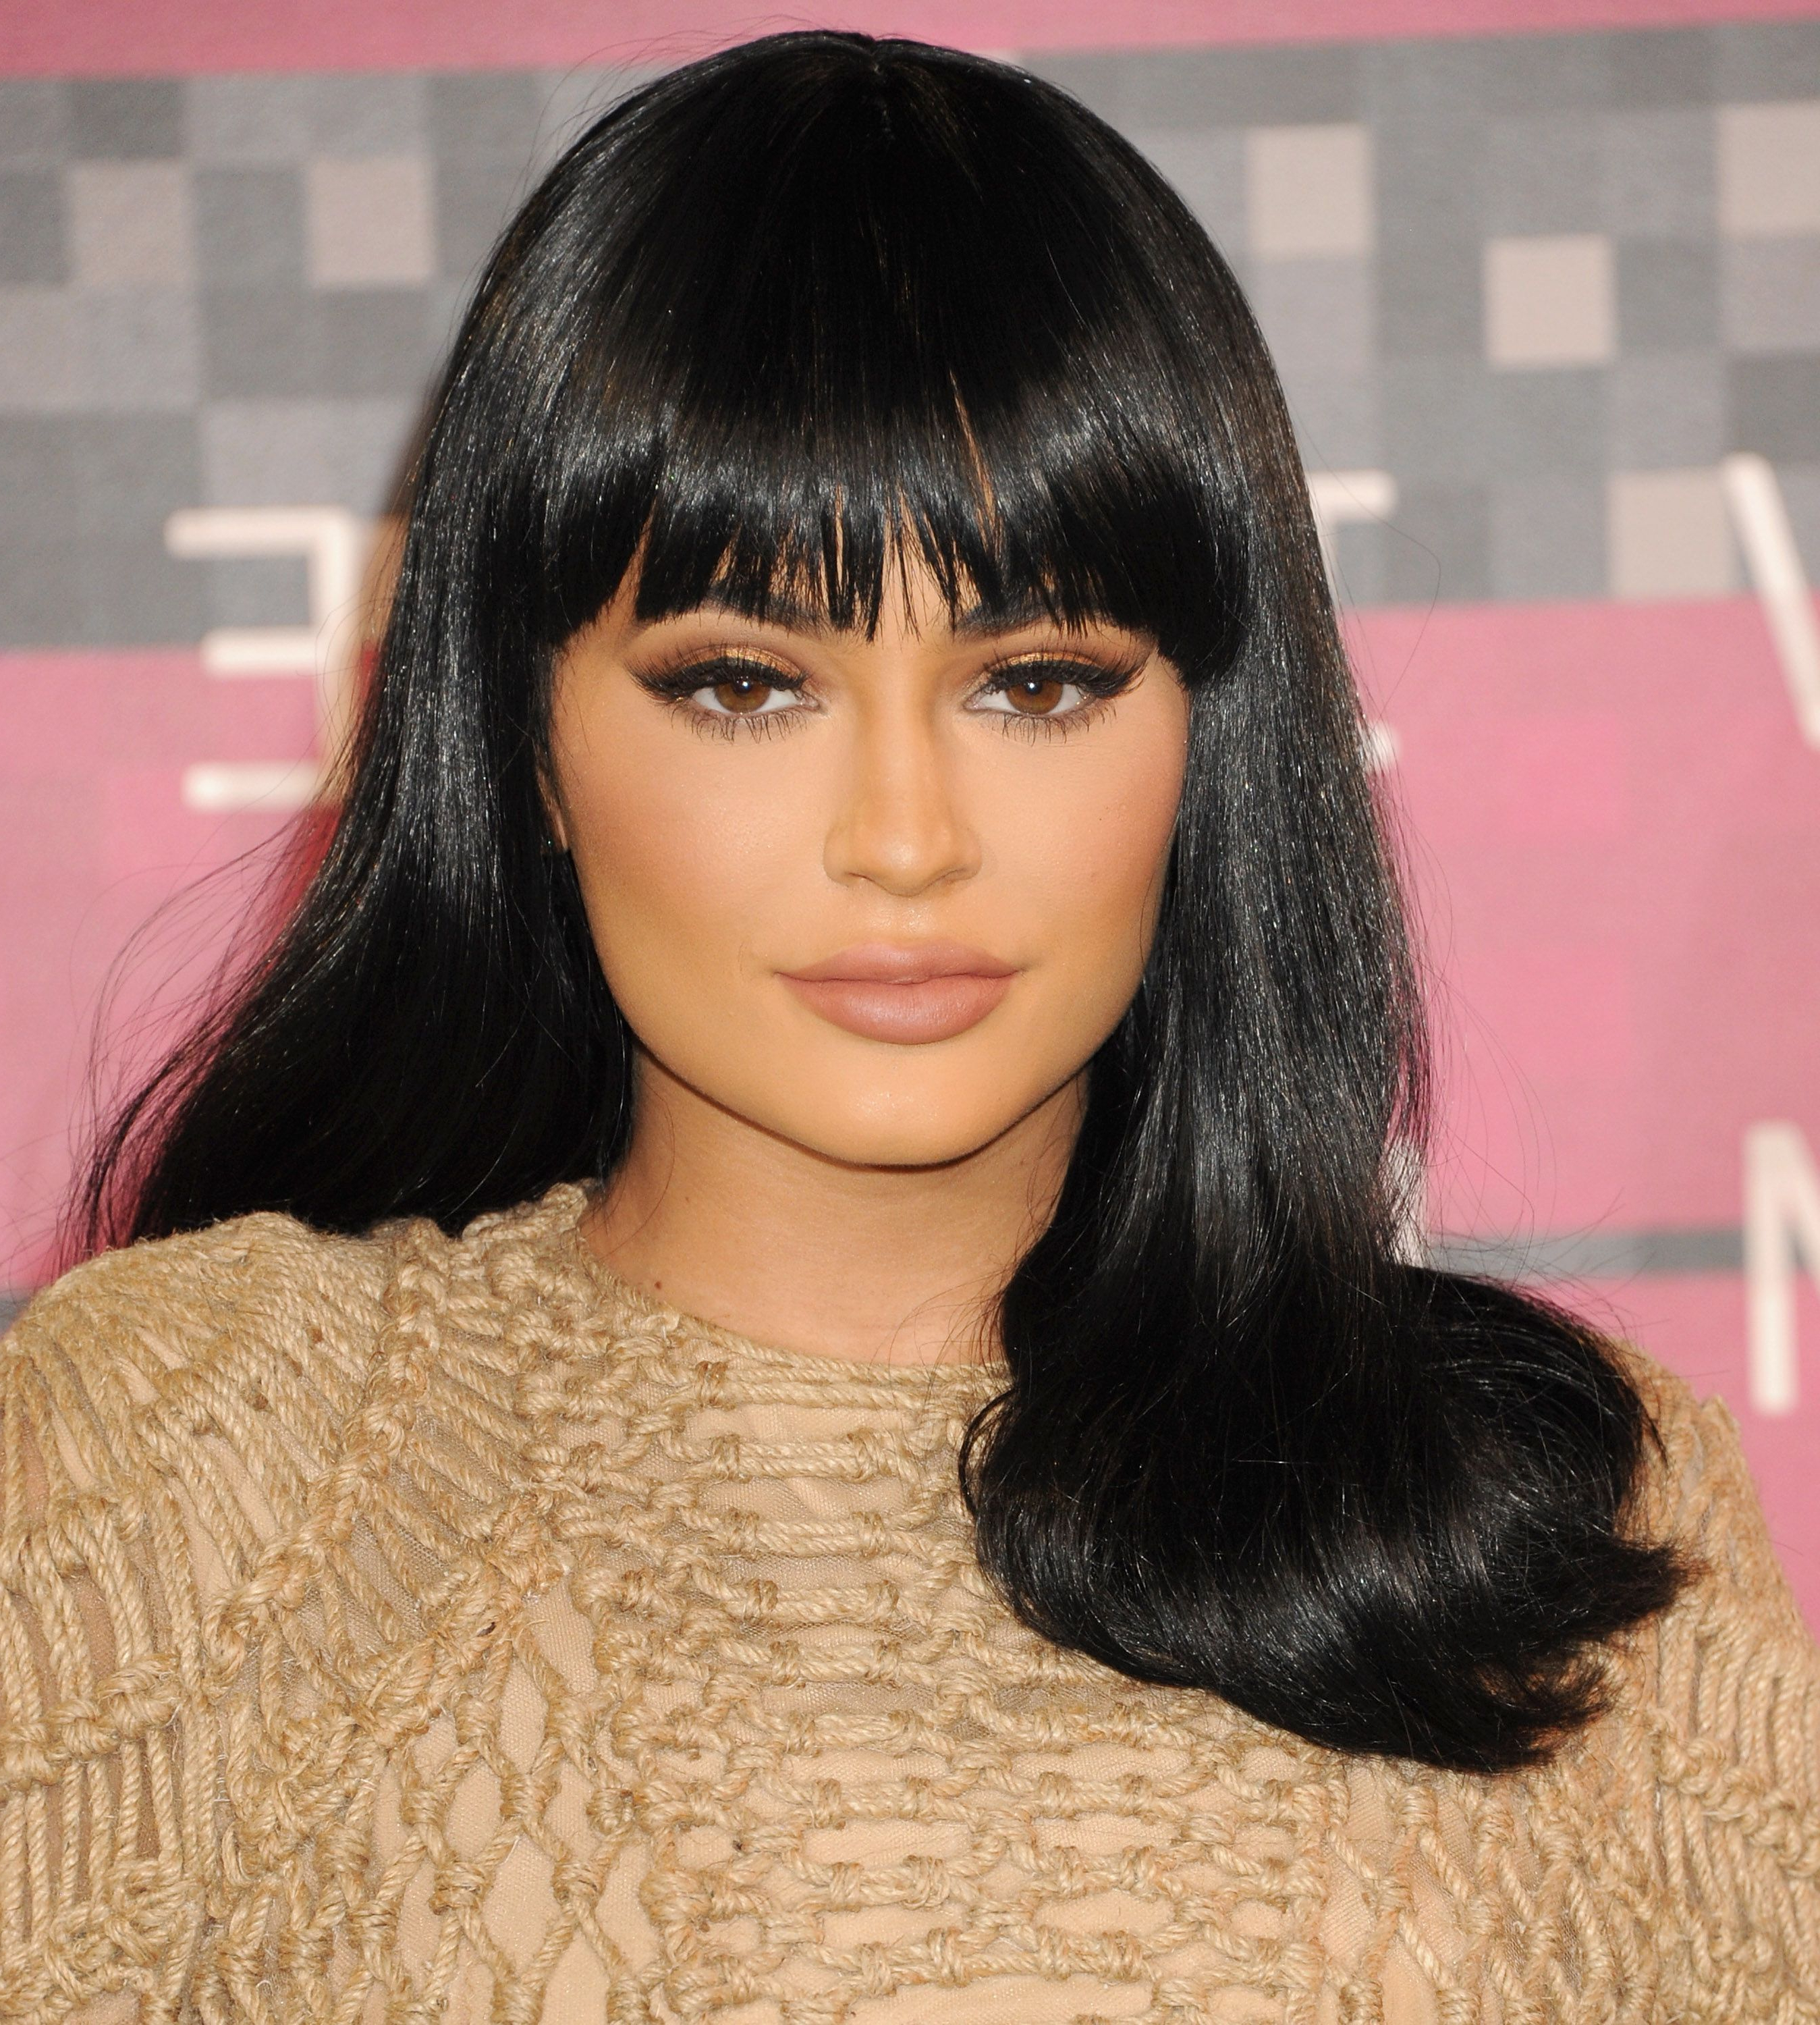 50 Best Kylie Jenner Hair Looks – The Best Hairstyles Of Kylie Jenner For 2017 Kris Jenner Medium Hairstyles (Gallery 12 of 20)